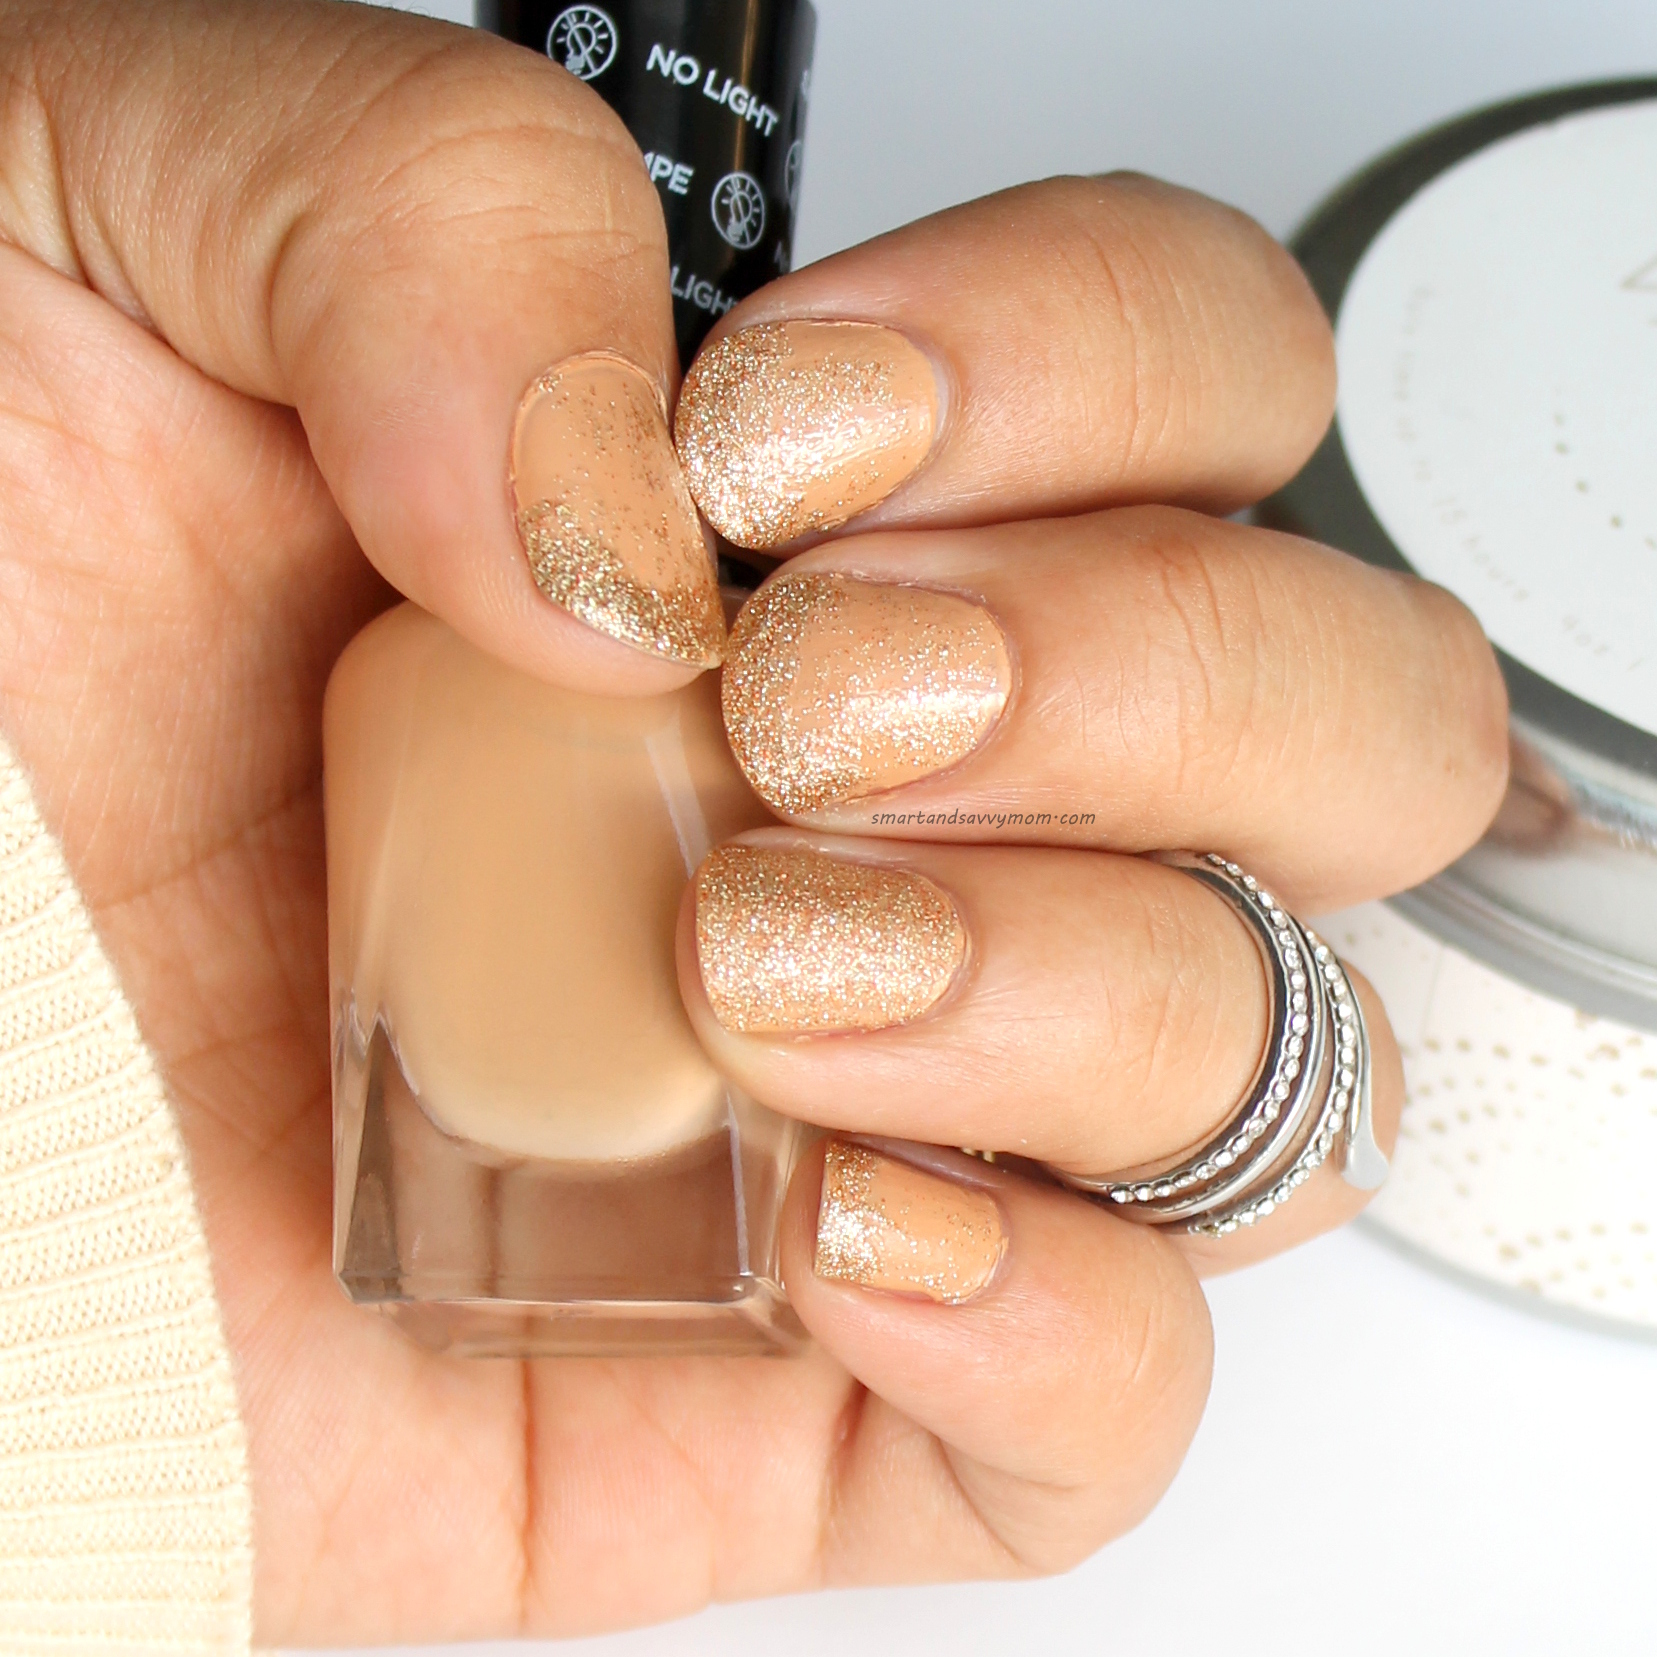 Golden Glitter Fall Manicure Nude and Gold Glitter Nails | Smart and ...